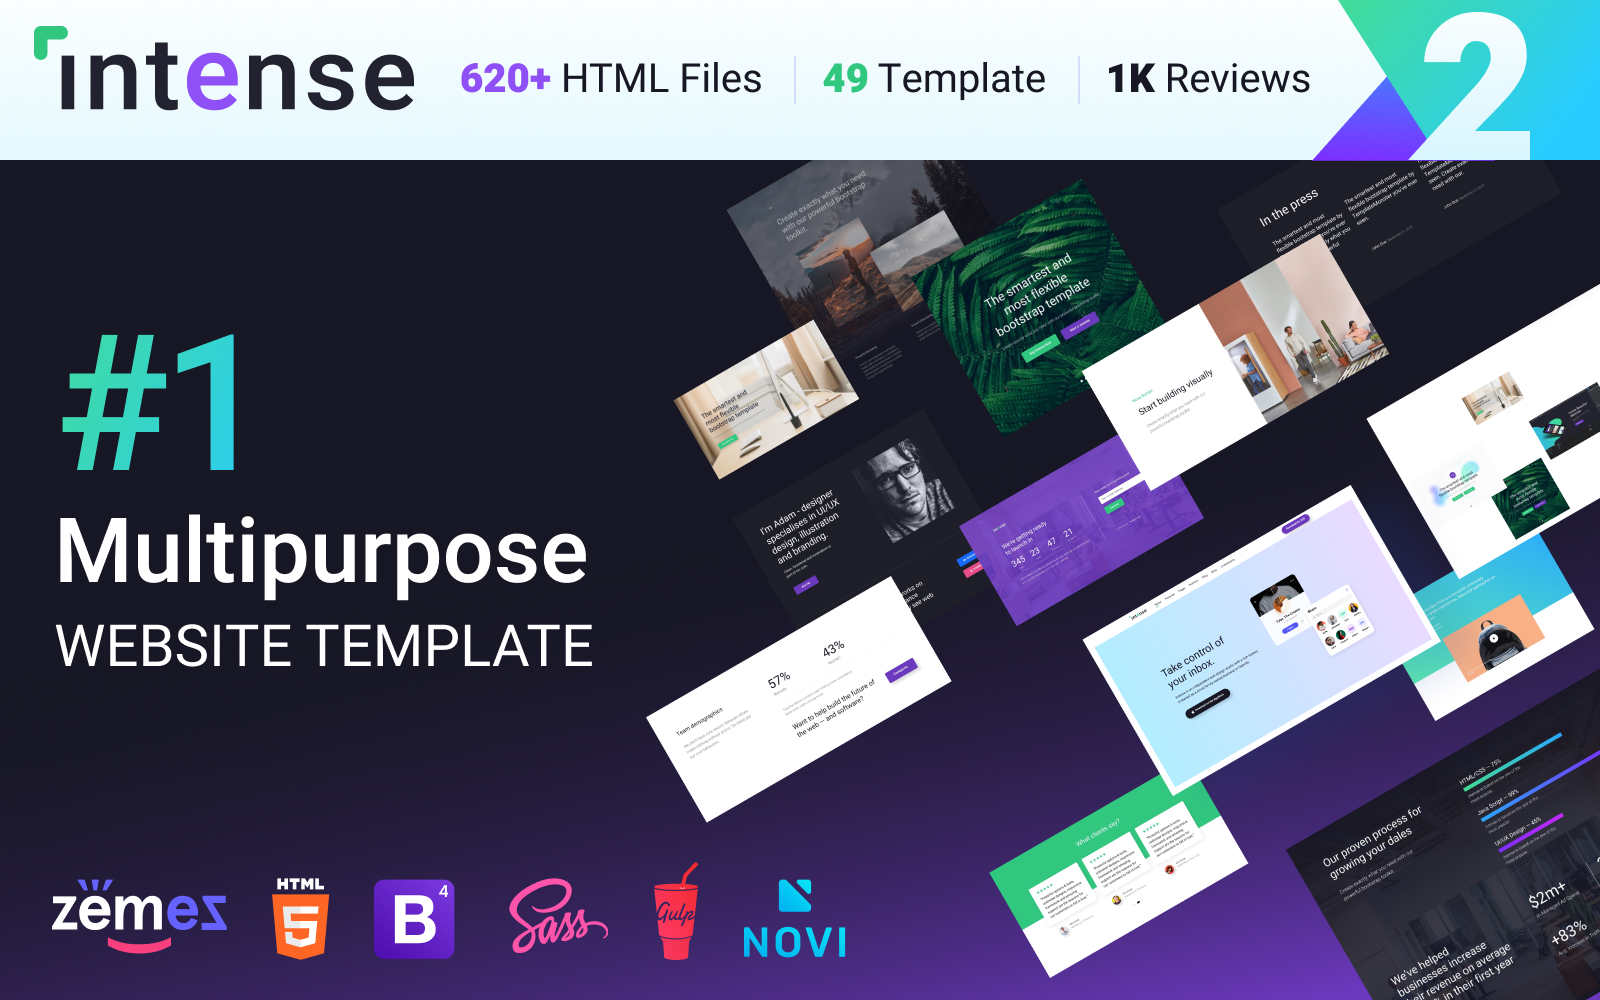 Multipurpose Website Template Intense - #1 HTML Bootstrap Website Template